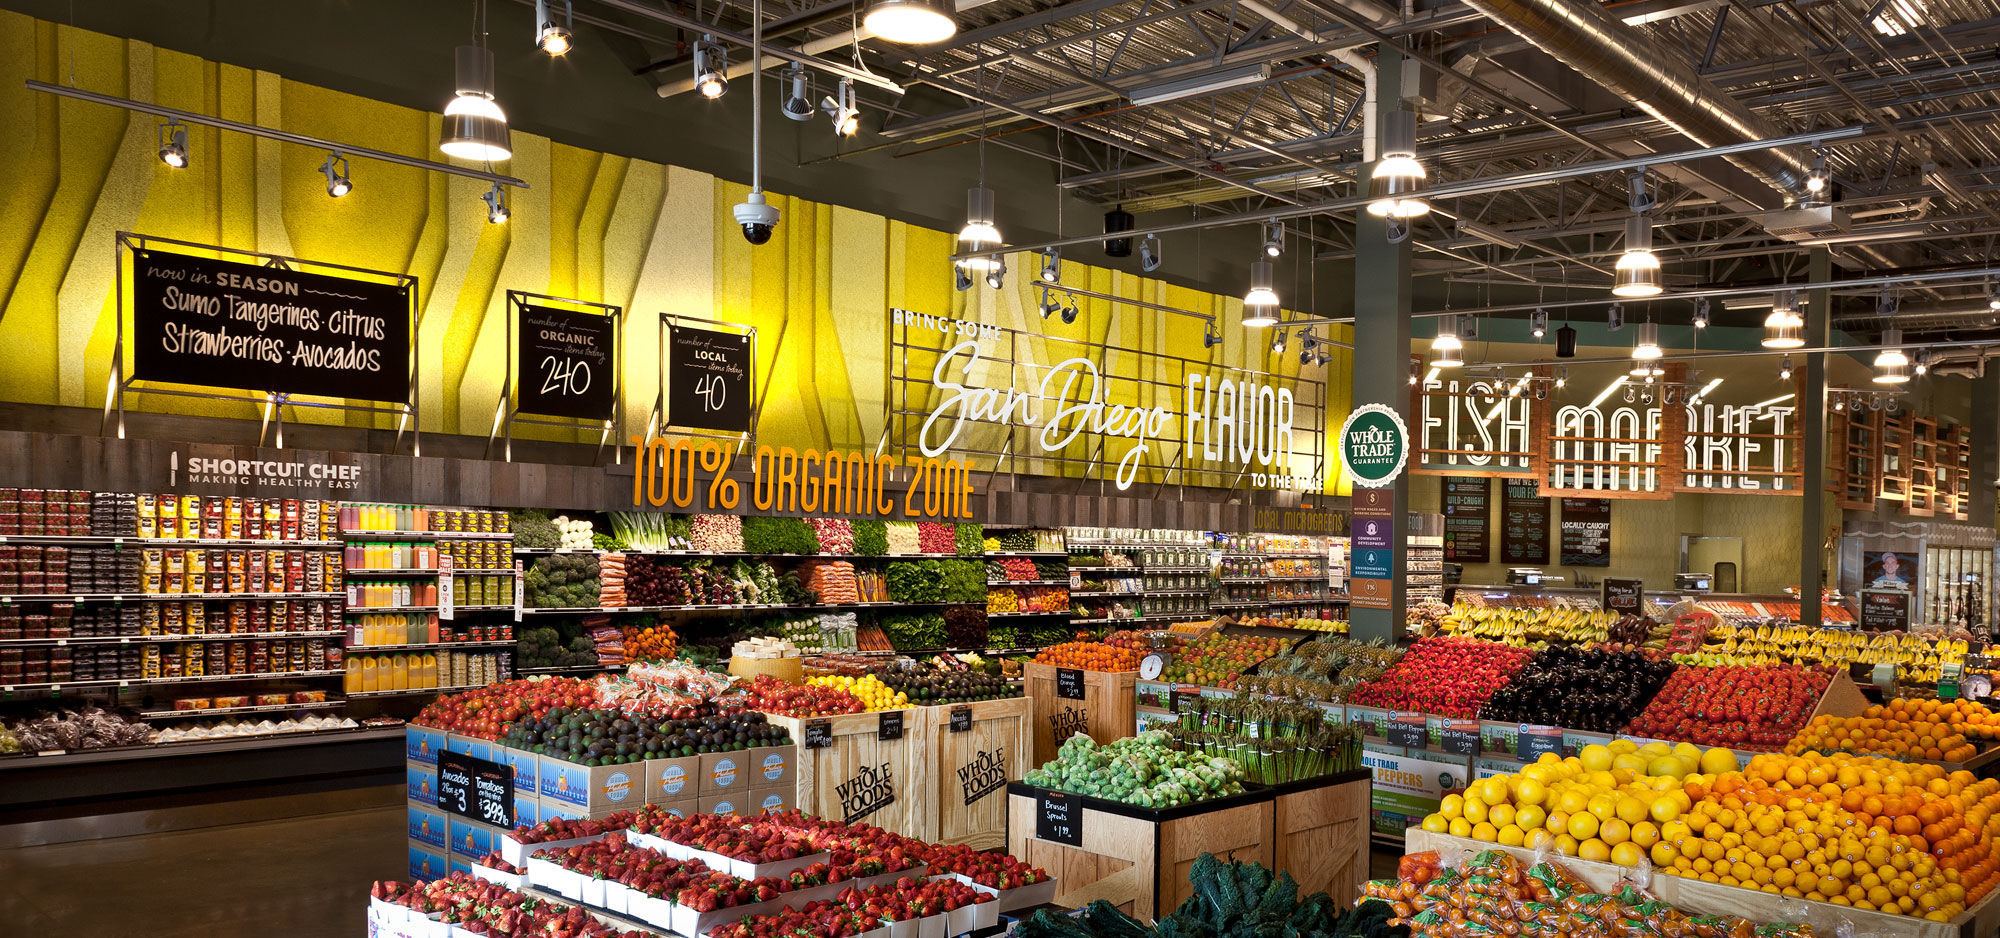 Interior of a Whole Foods Market in Del Mar, California.   (DLE Design)